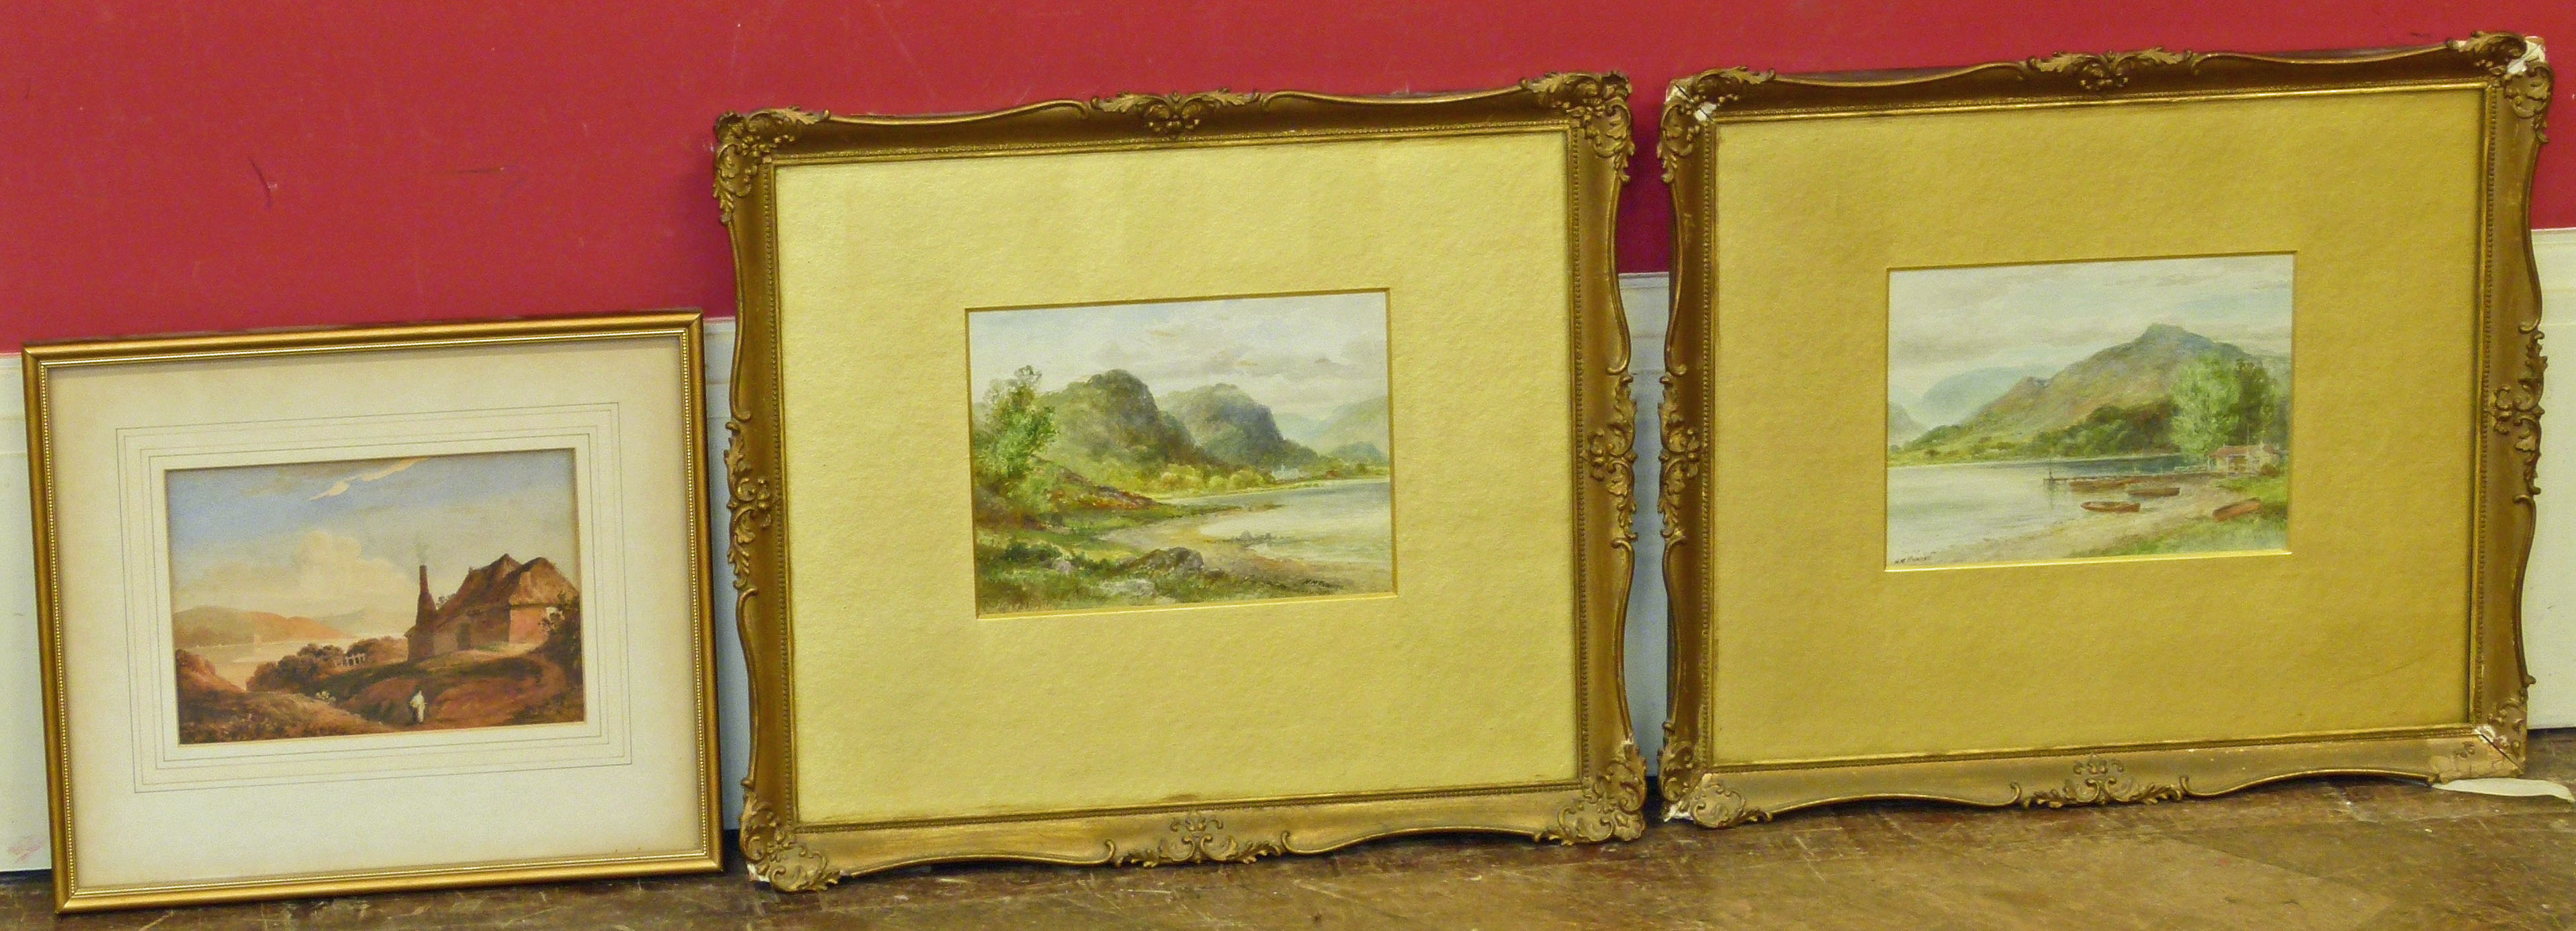 Lot 5 - Two watercolours by H.M Krause and one other watercolour We are unable to do condition reports on